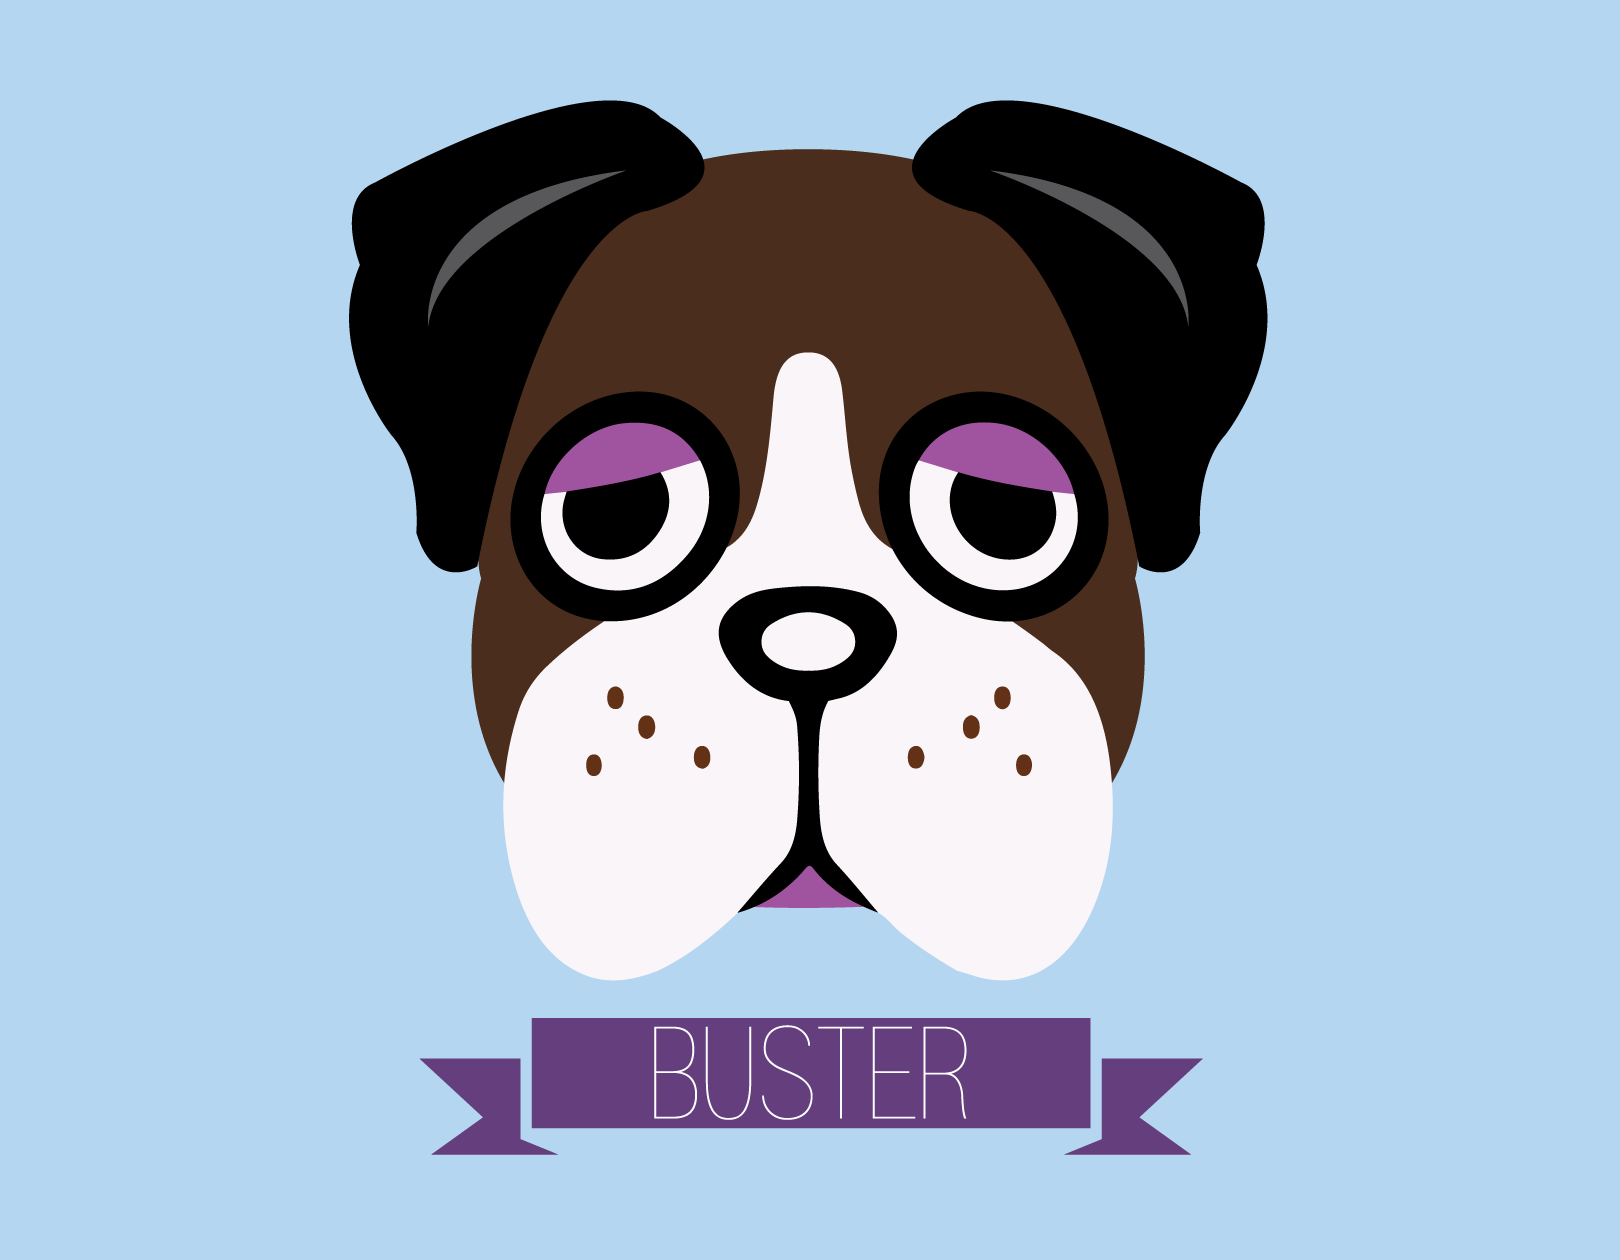 buster-01.png